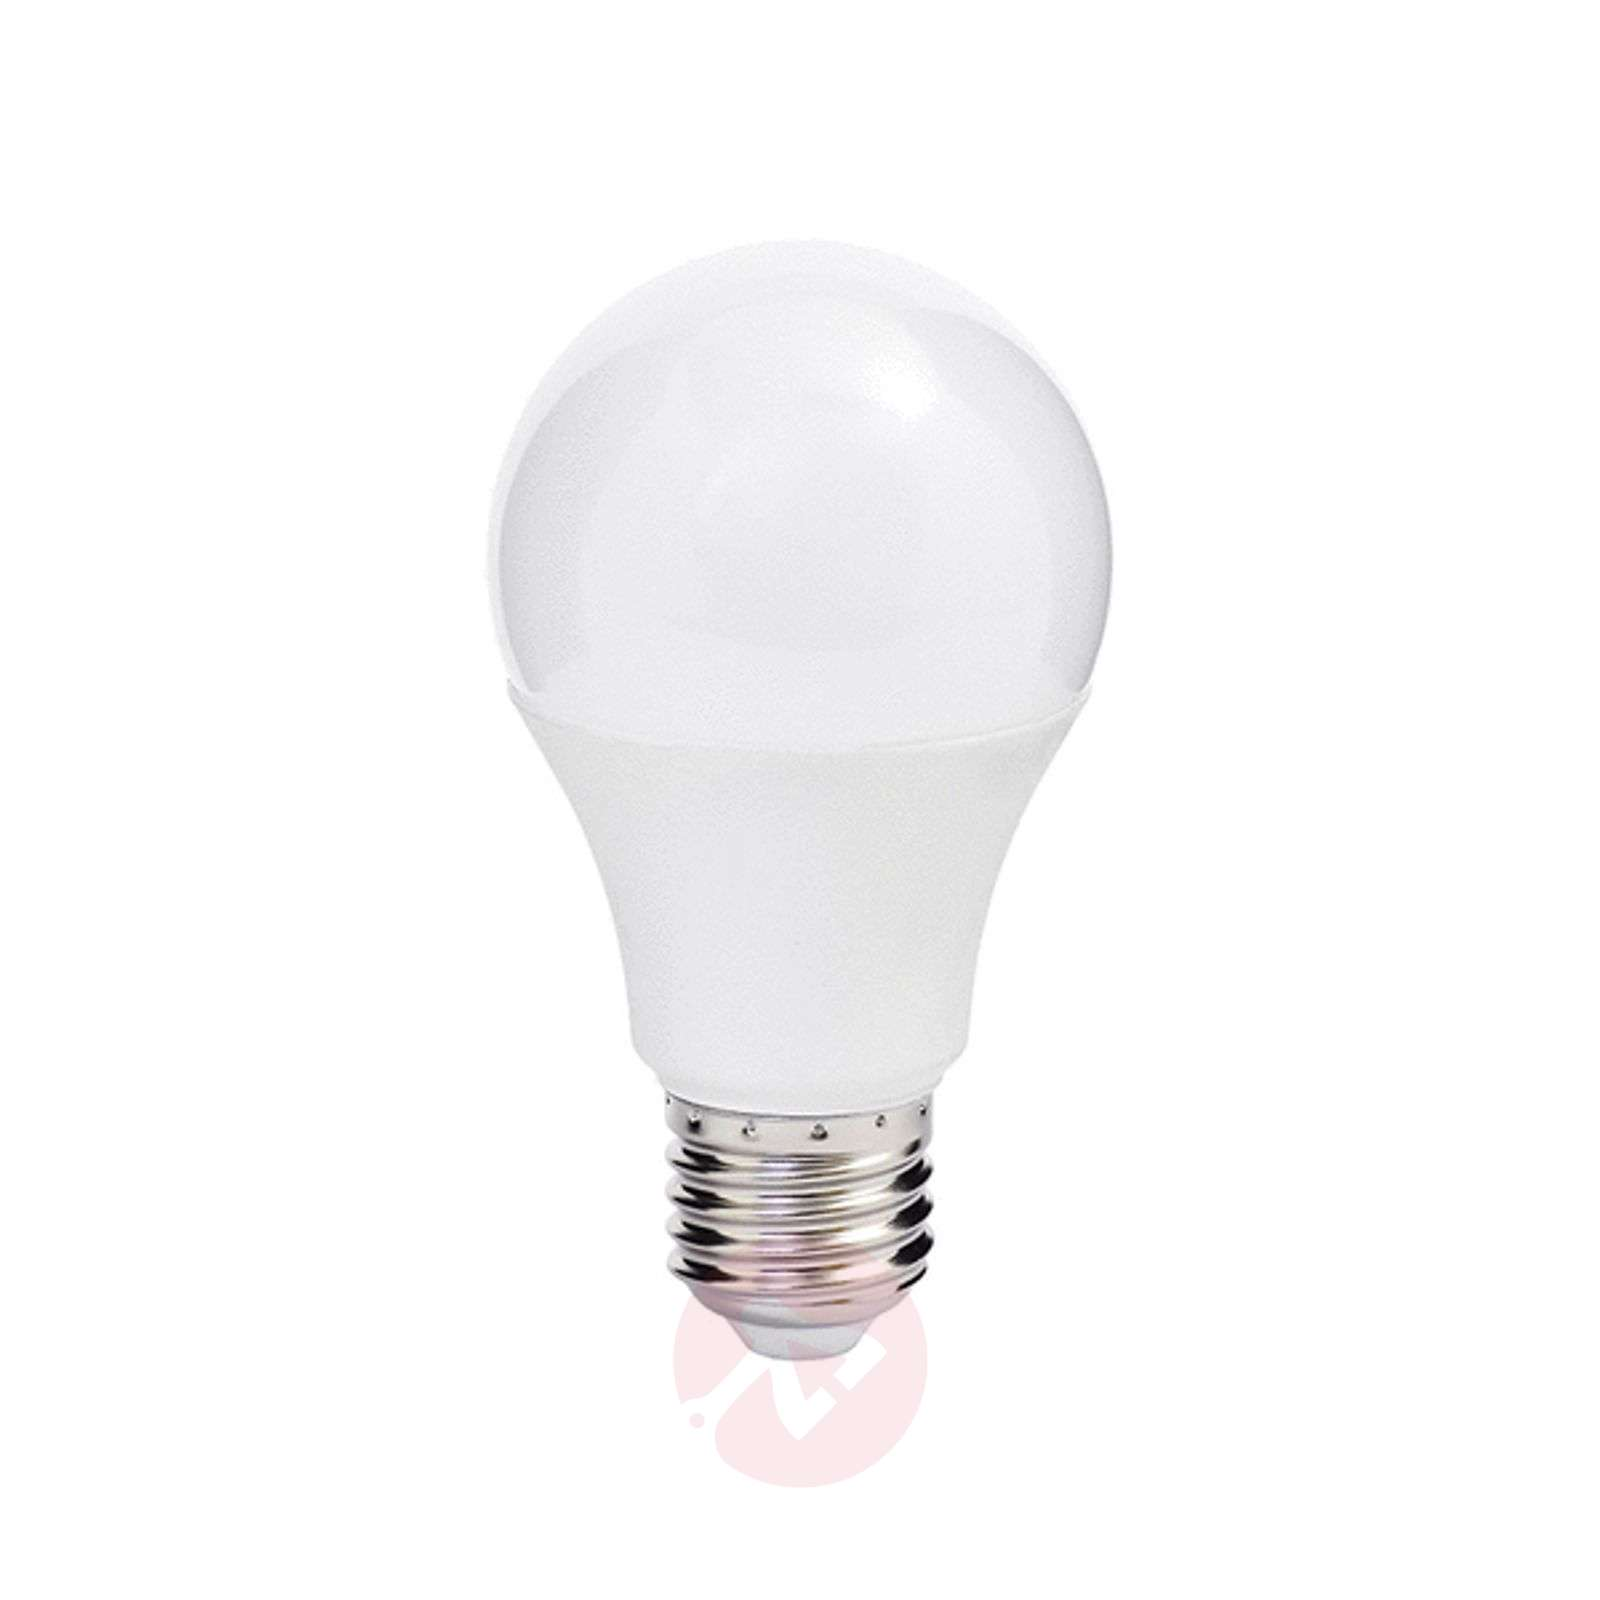 E27 7 W 927 HD LED lamps-6520230-01